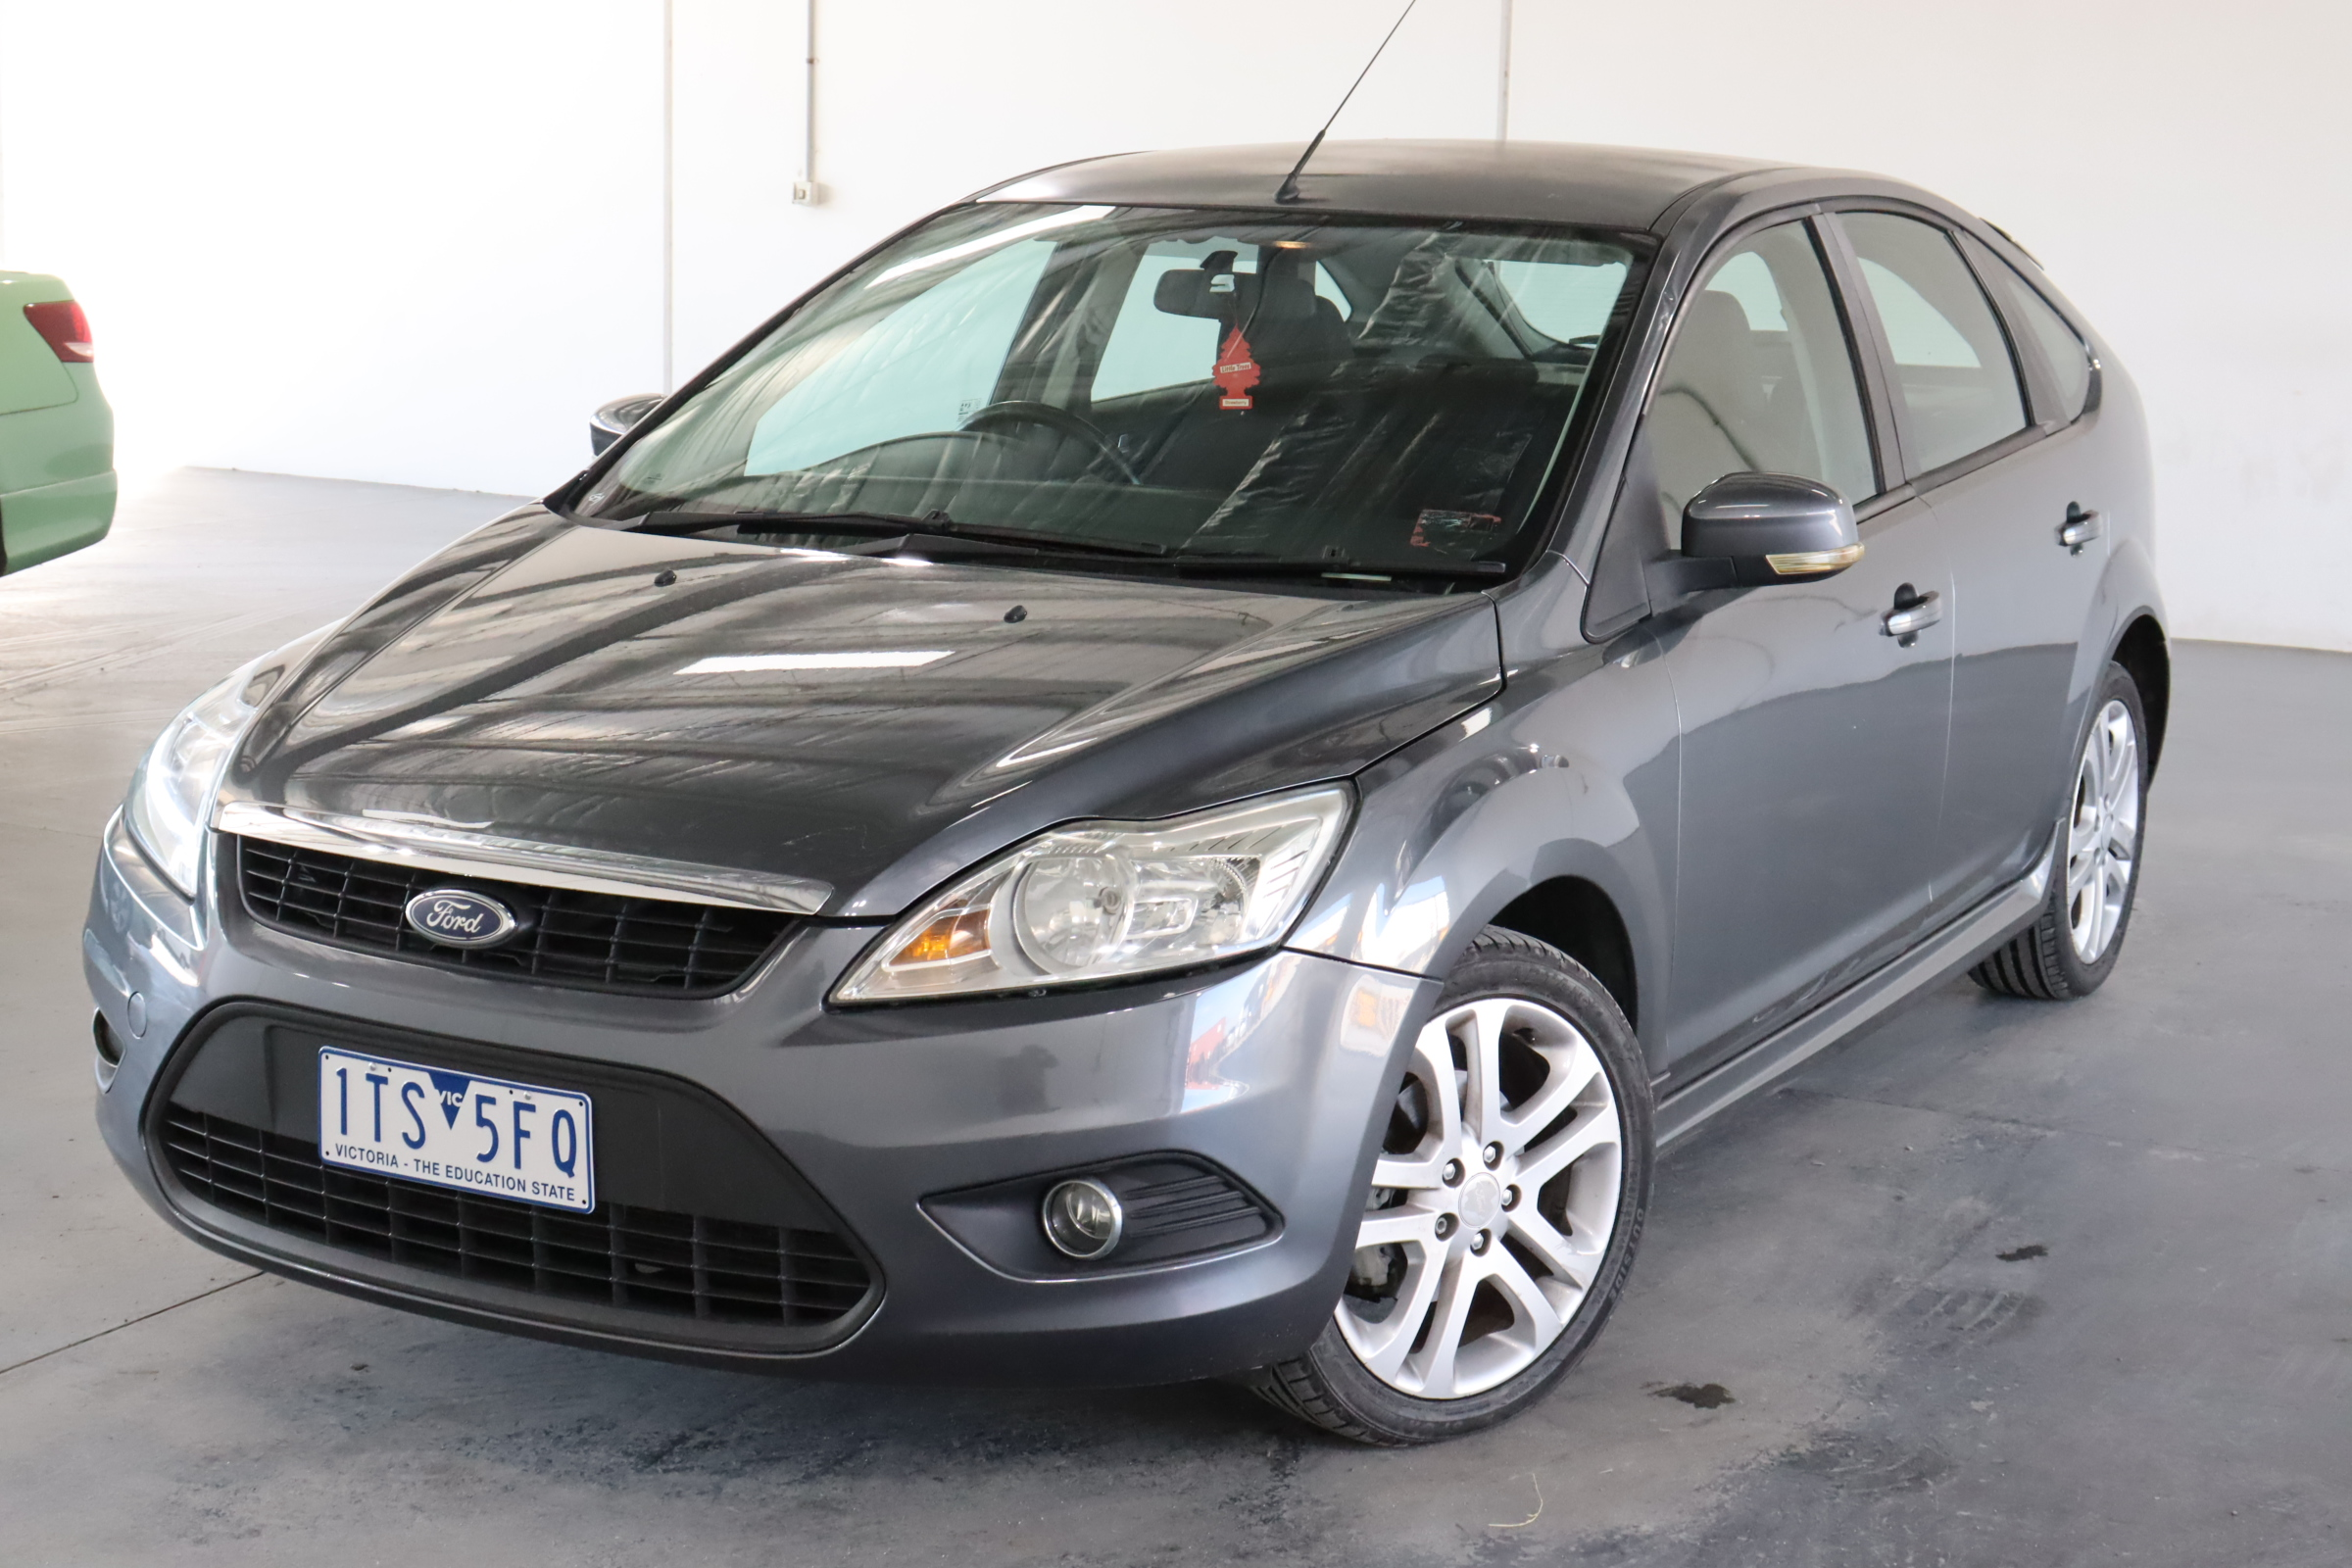 2009 Ford Focus Zetec LV Automatic Hatchback (RWC Issued 6-4-21)